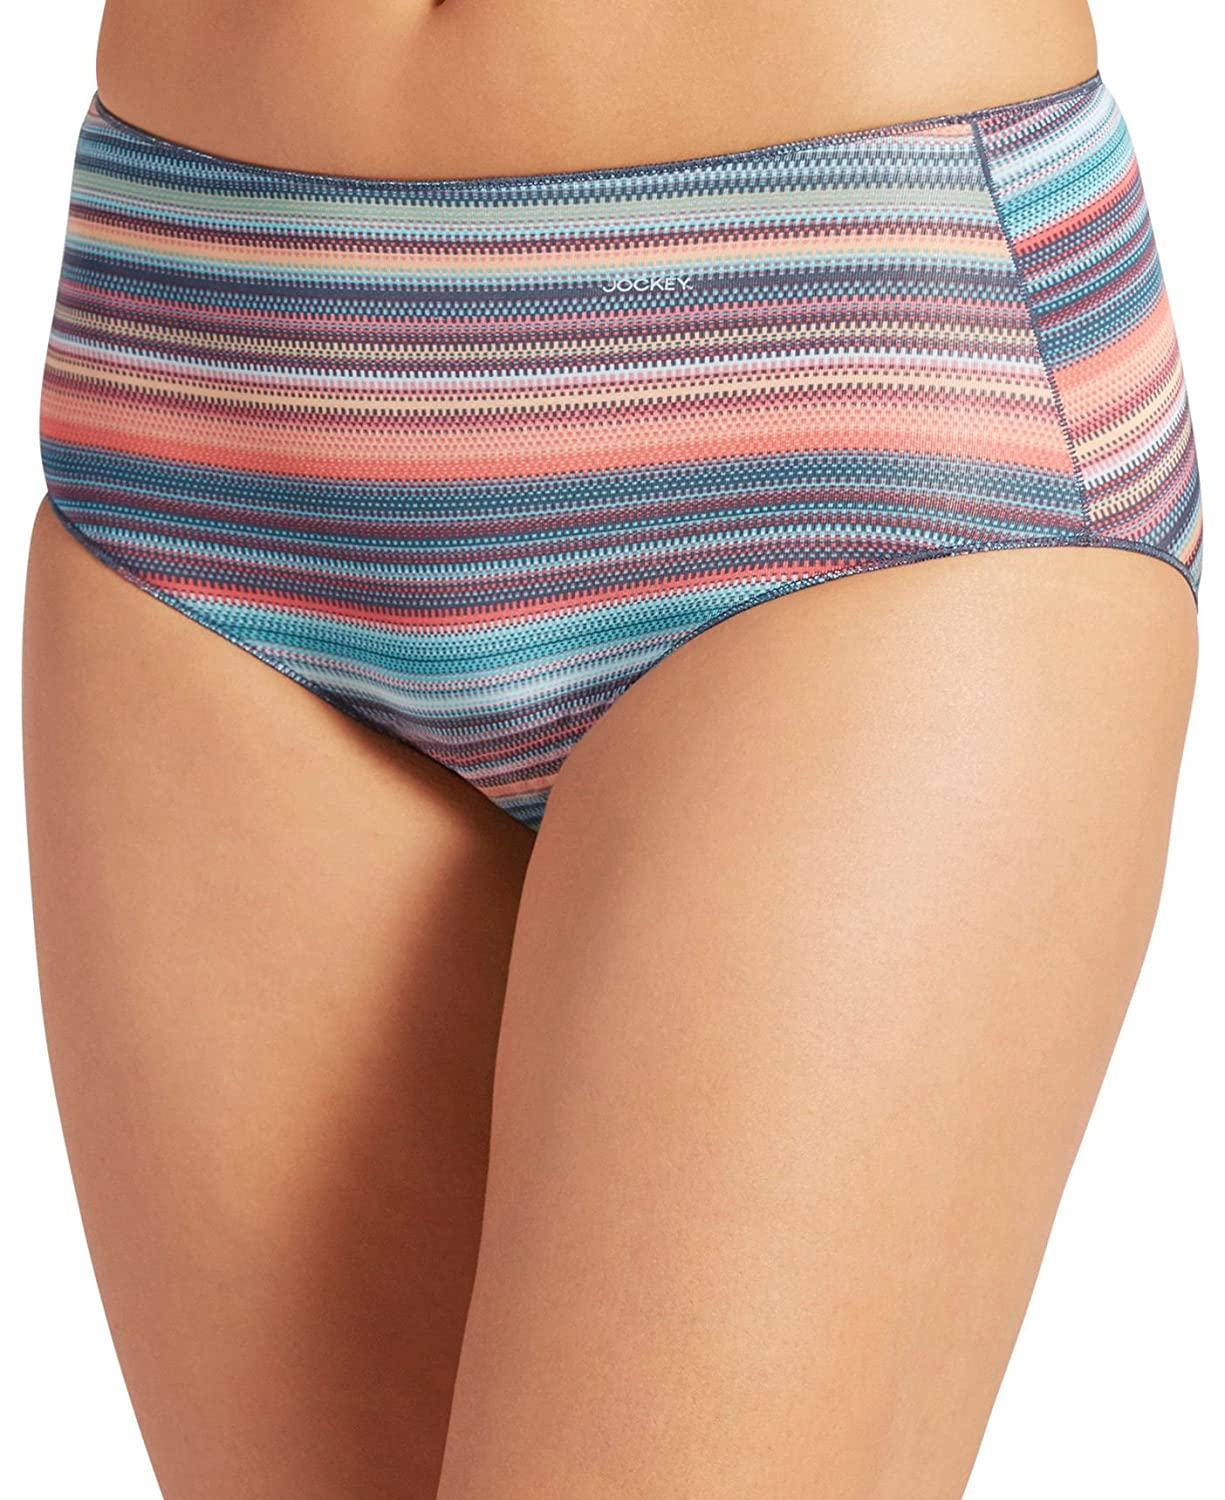 178c6991841e Jockey Women's Underwear No Panty Line Promise Tactel Hip Brief, Sunset  Stripe, 5: Amazon.in: Clothing & Accessories